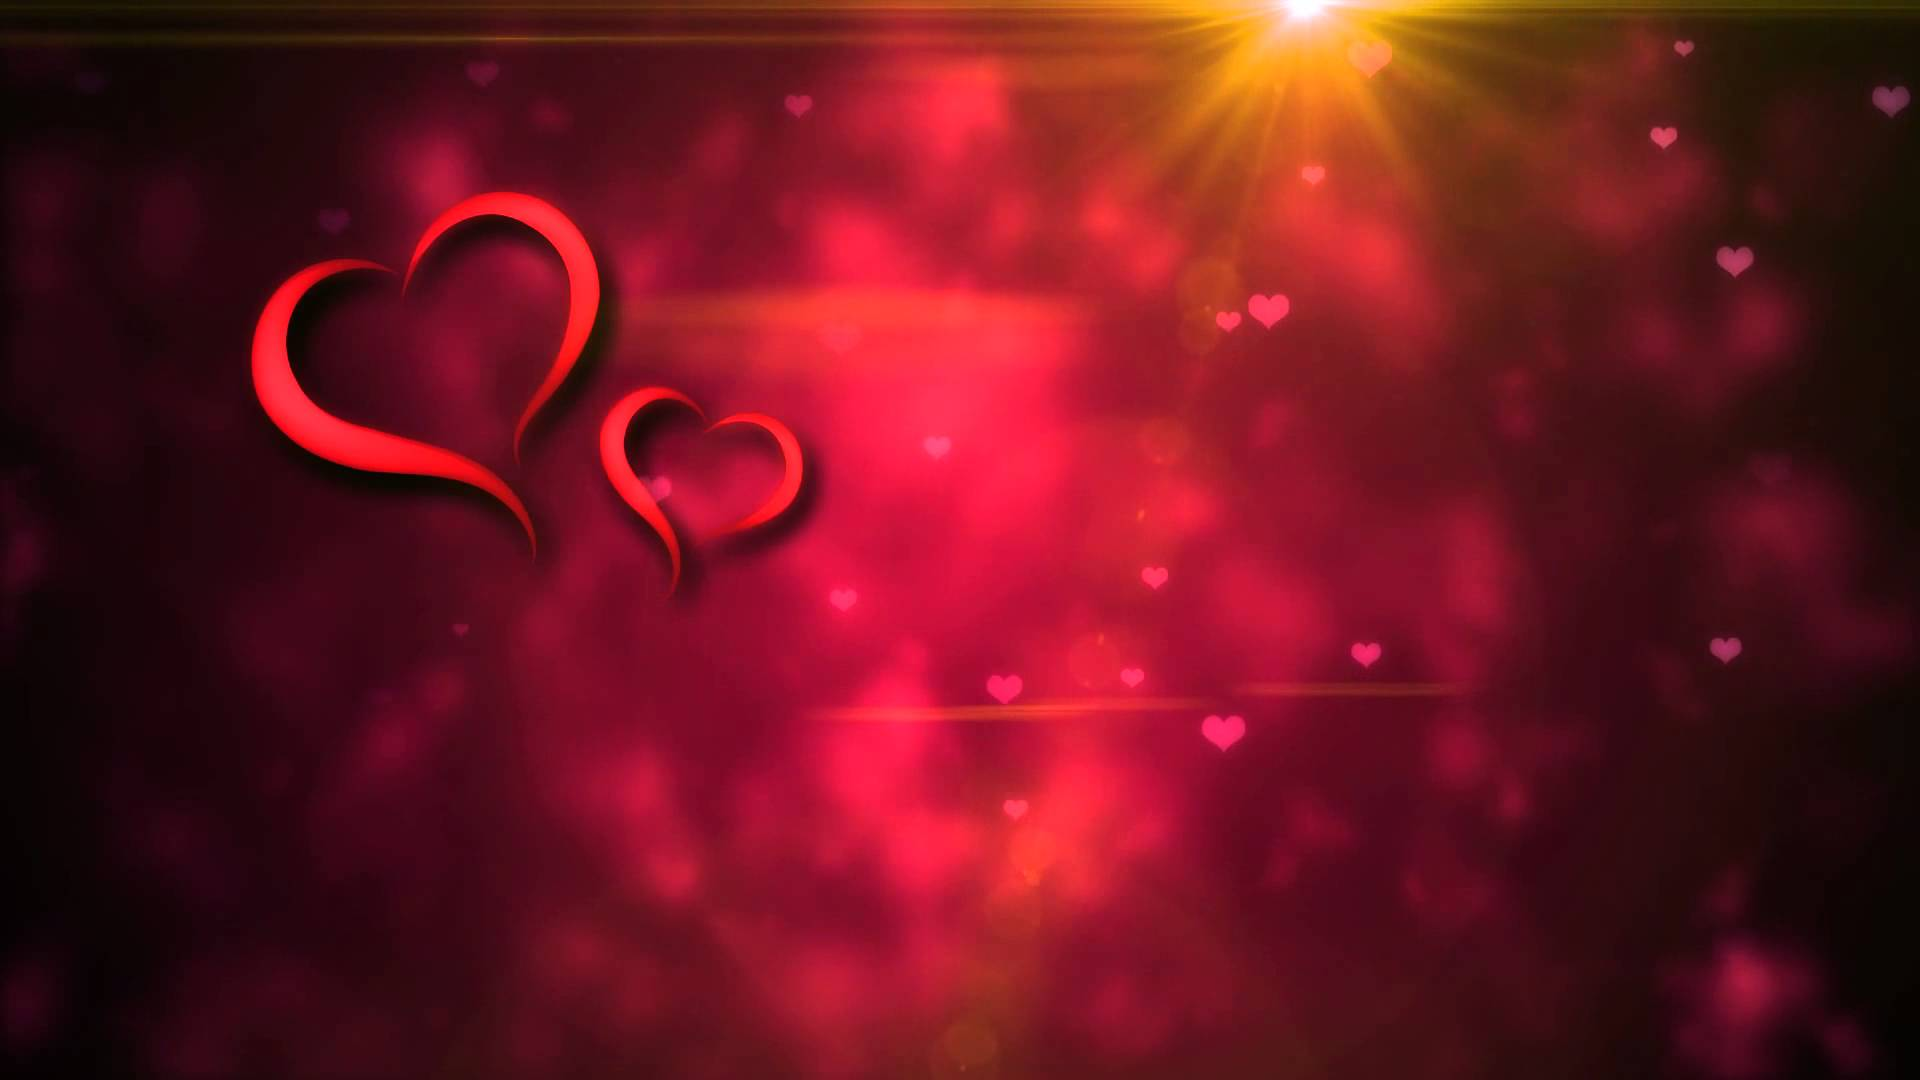 Love Wallpaper In Hd Quality : Hd Wedding Backgrounds - WallpaperSafari